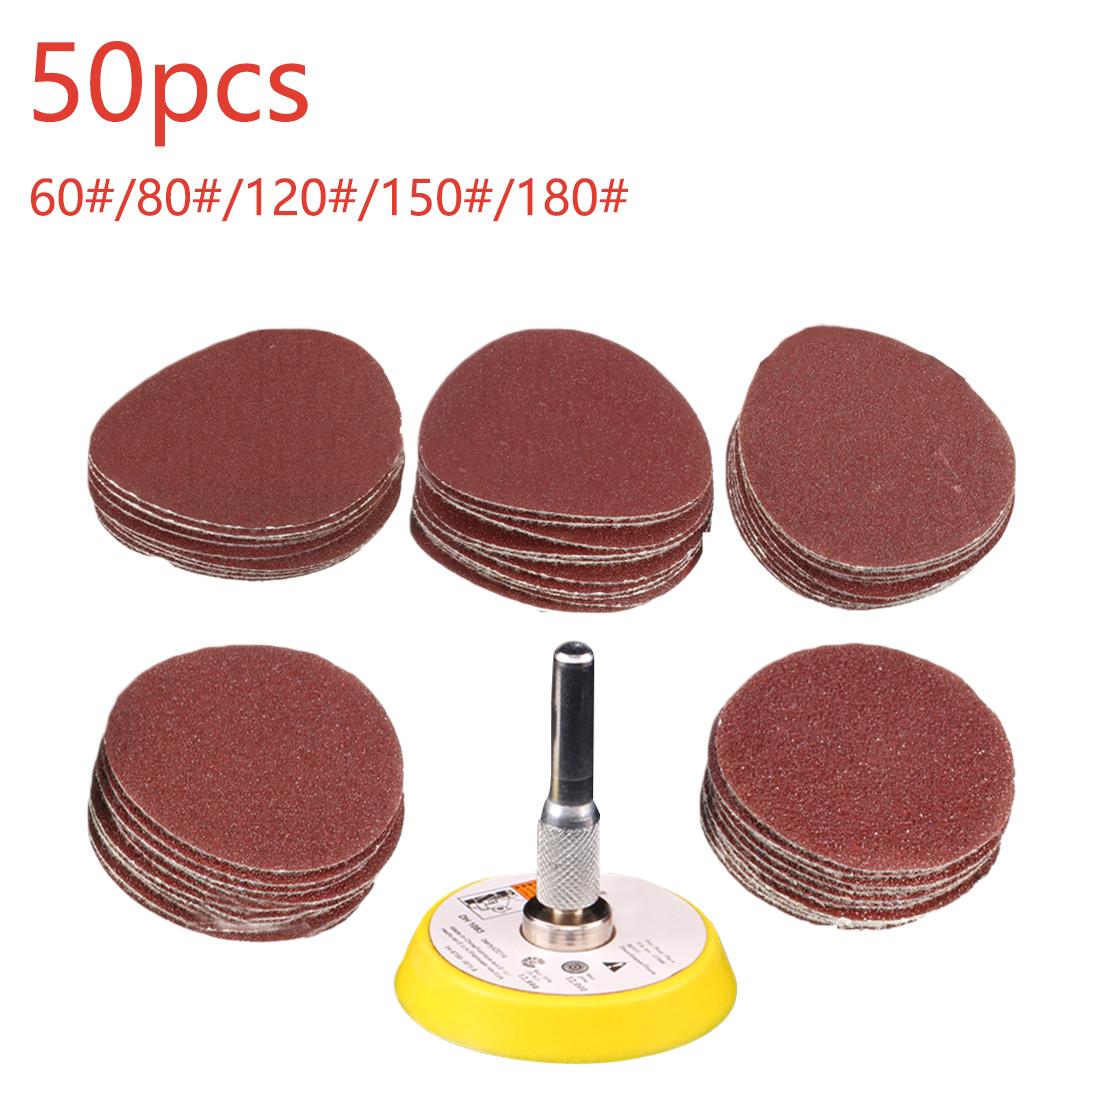 2 Inch  Brushed Polishing Pad 50pcs Wet Sandpaper Polishing Grinding Tool 60/80/120/150/180+1pc Hook Loop Plate Fit Dremel